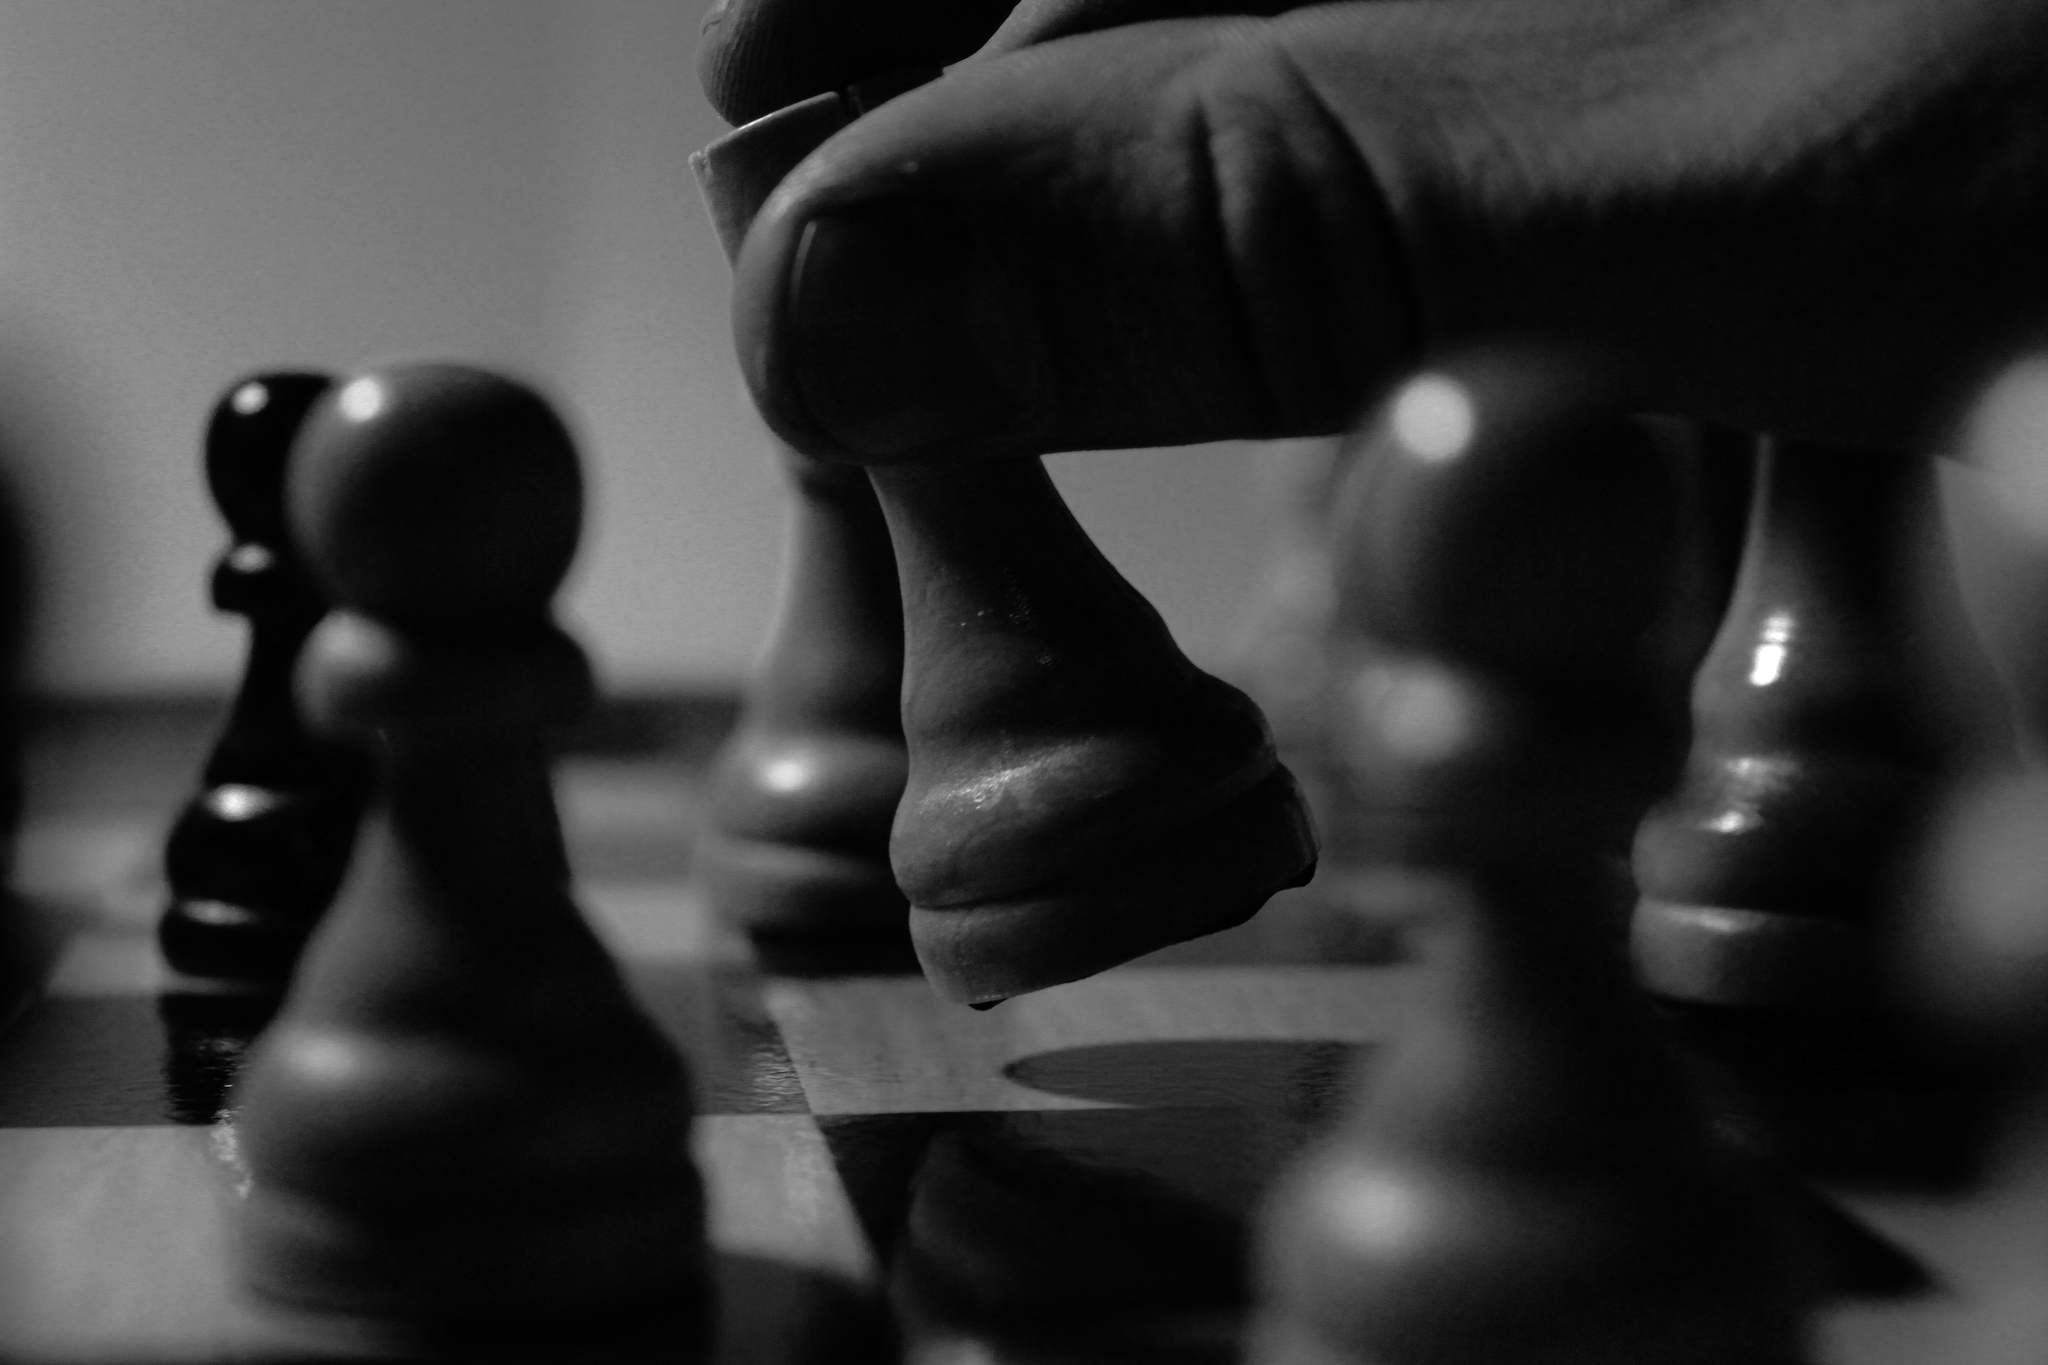 How Tibetan Chess Helped Me Deal With Disturbing Emotions